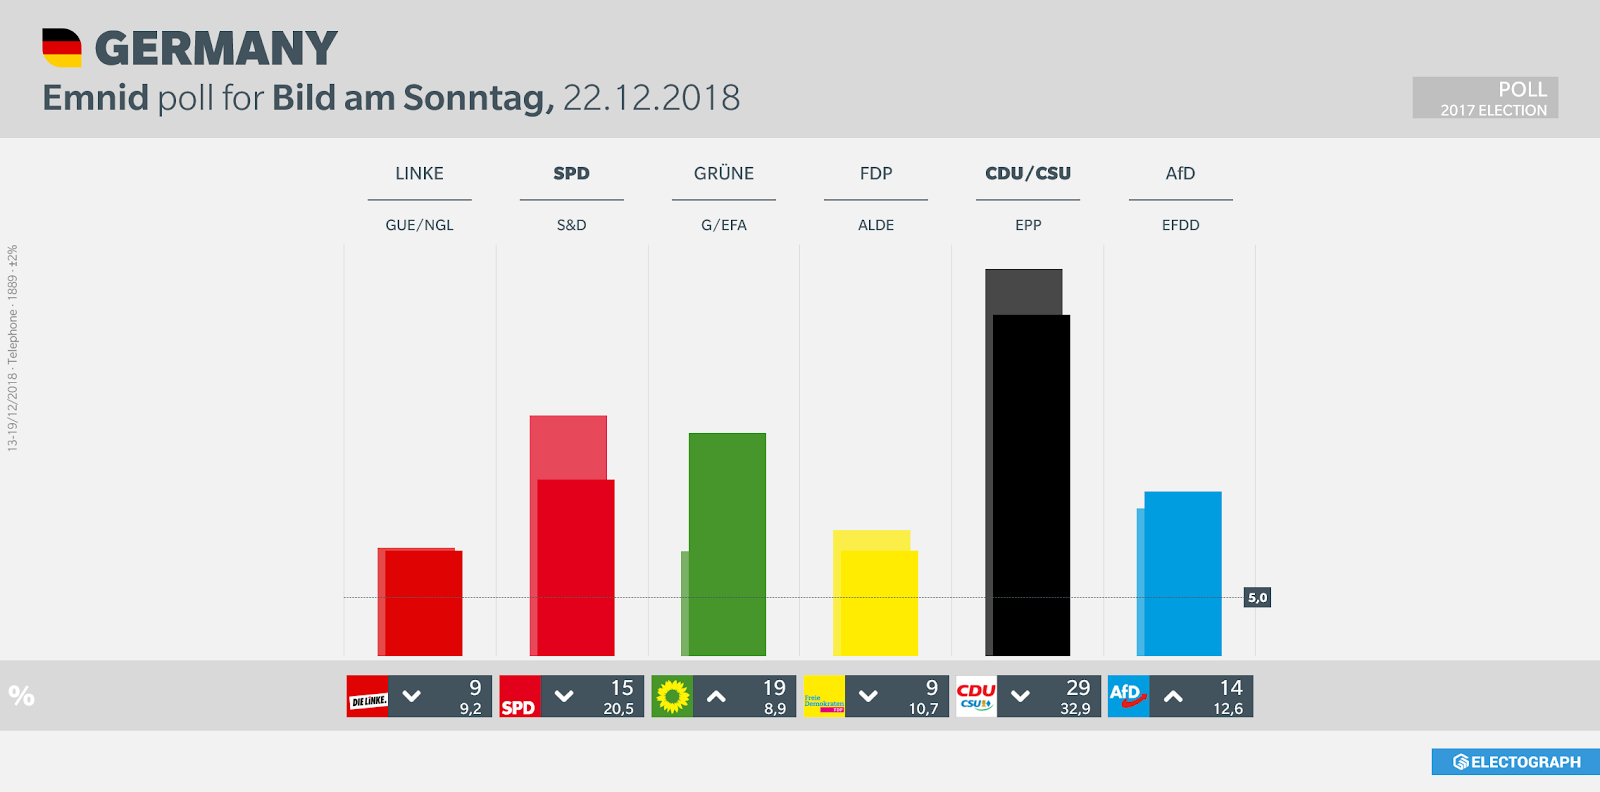 GERMANY: Emnid poll chart for Bild am Sonntag, 22 December 2018